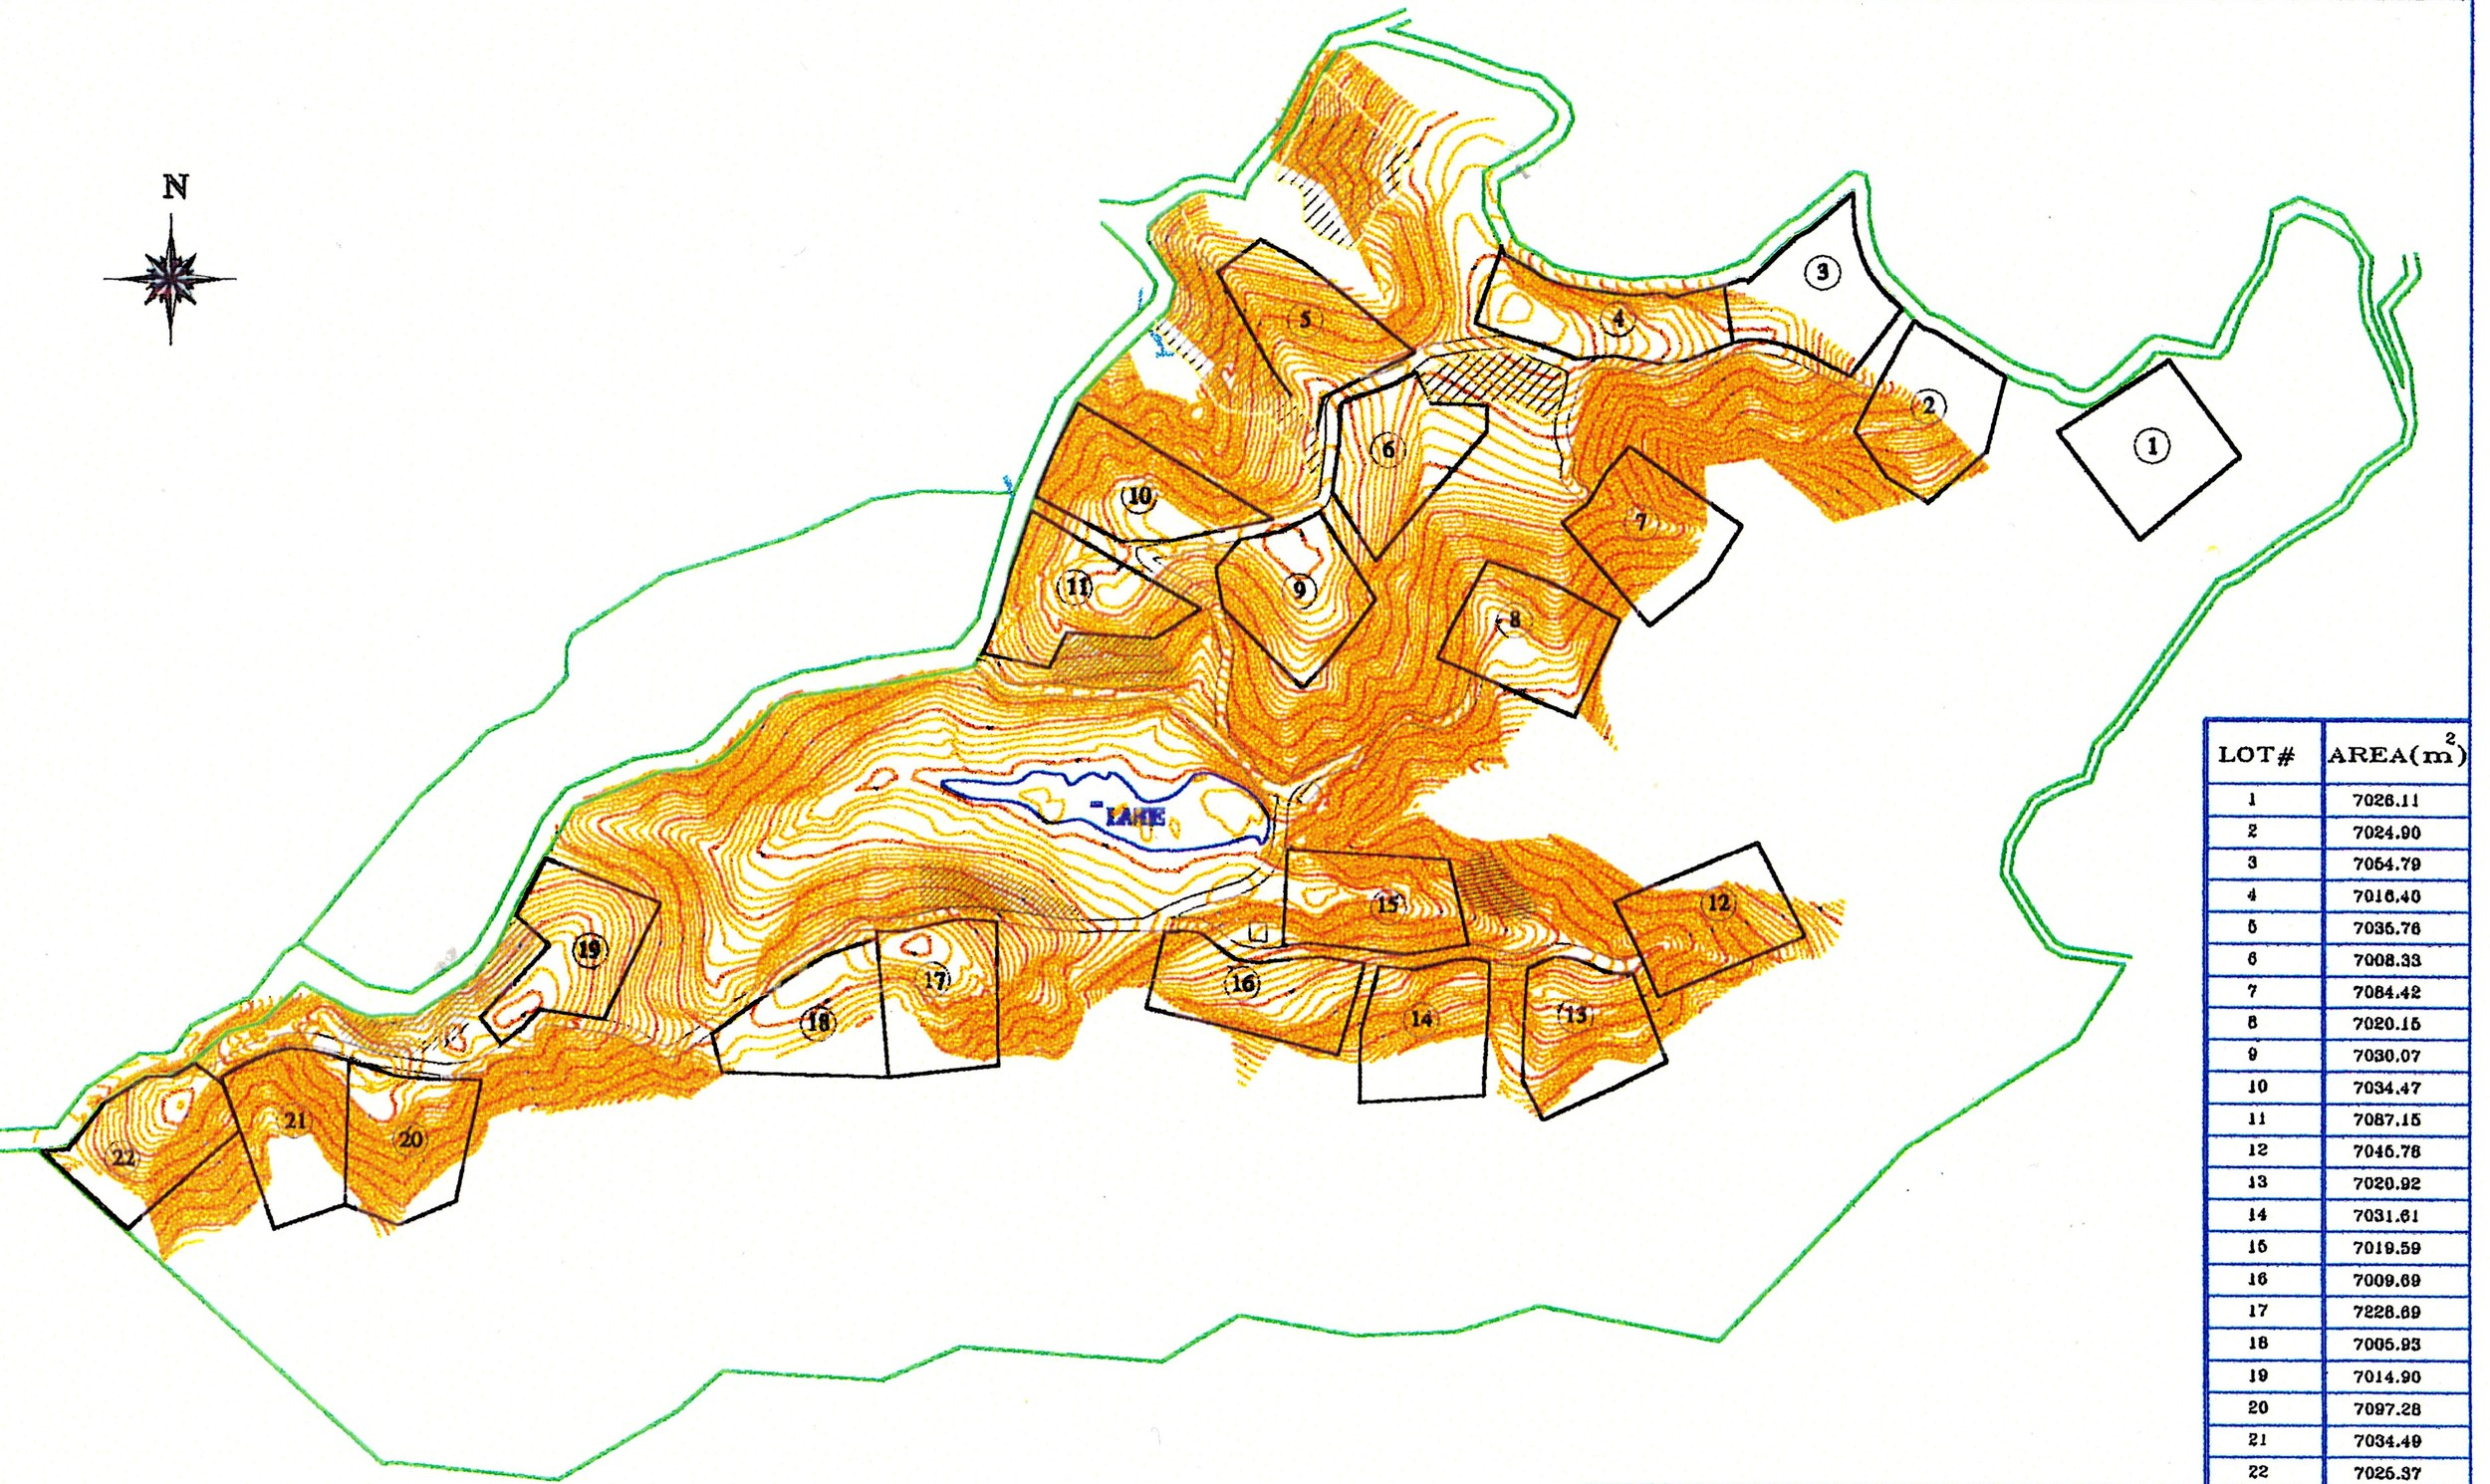 Copy of Surveyed upper farm map for home lots.